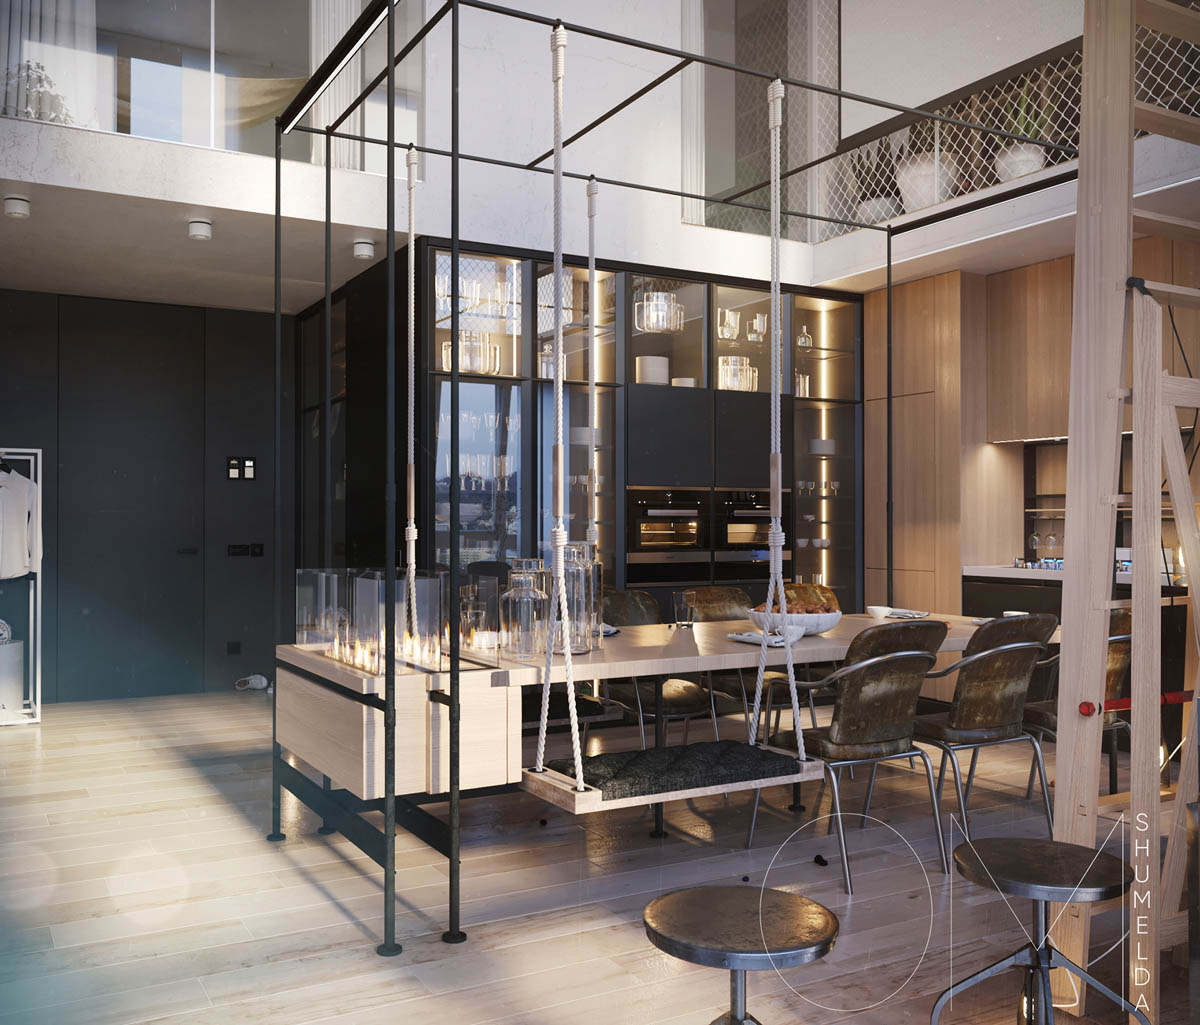 House Decorationdesign: 4 Chic Homes That Utilize Lofted Spaces